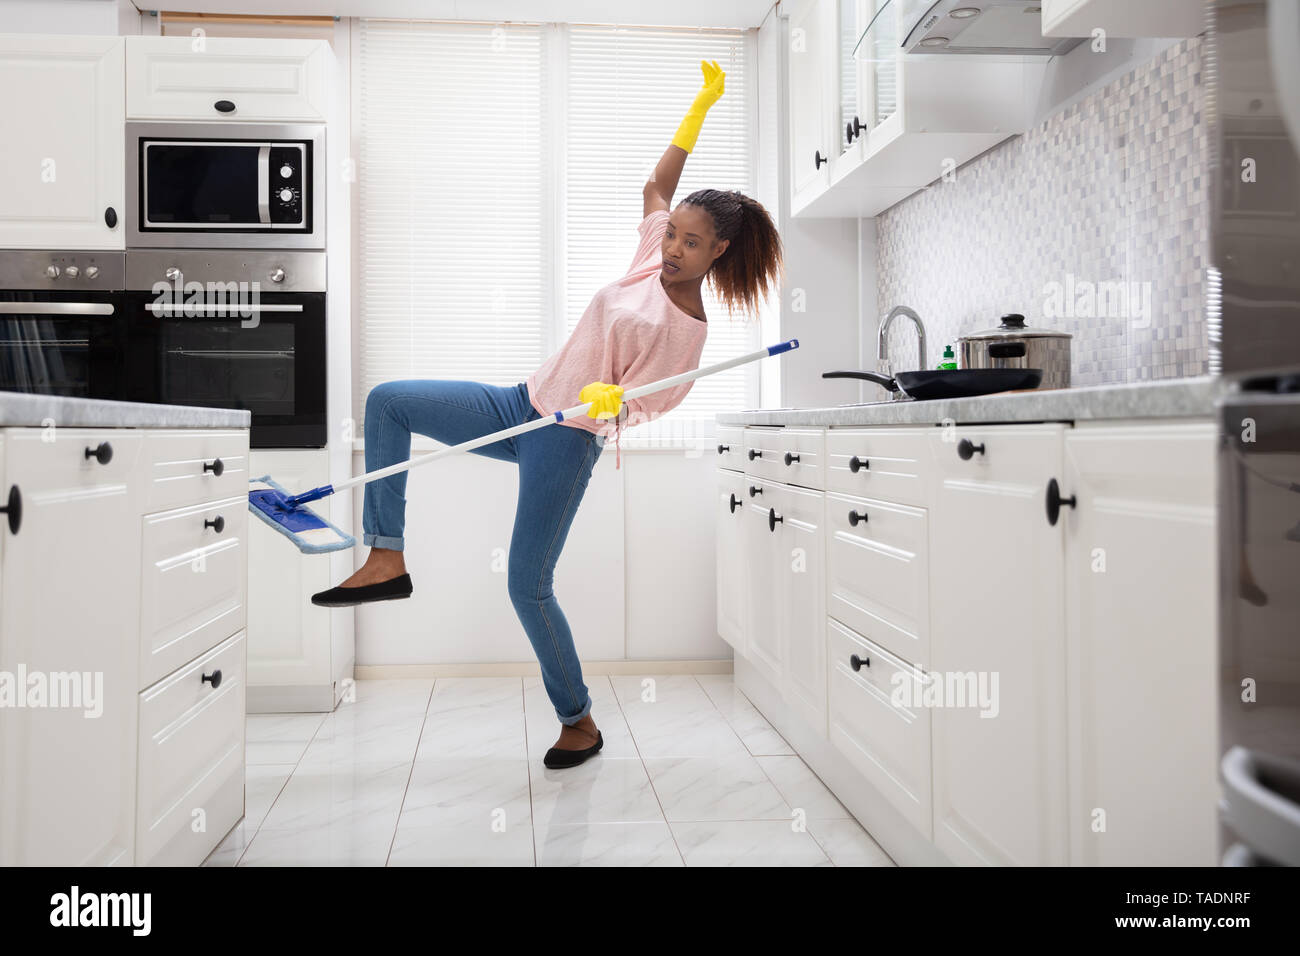 Close-up Of A Young African Woman Slipping While Mopping Floor In The Kitchen - Stock Image